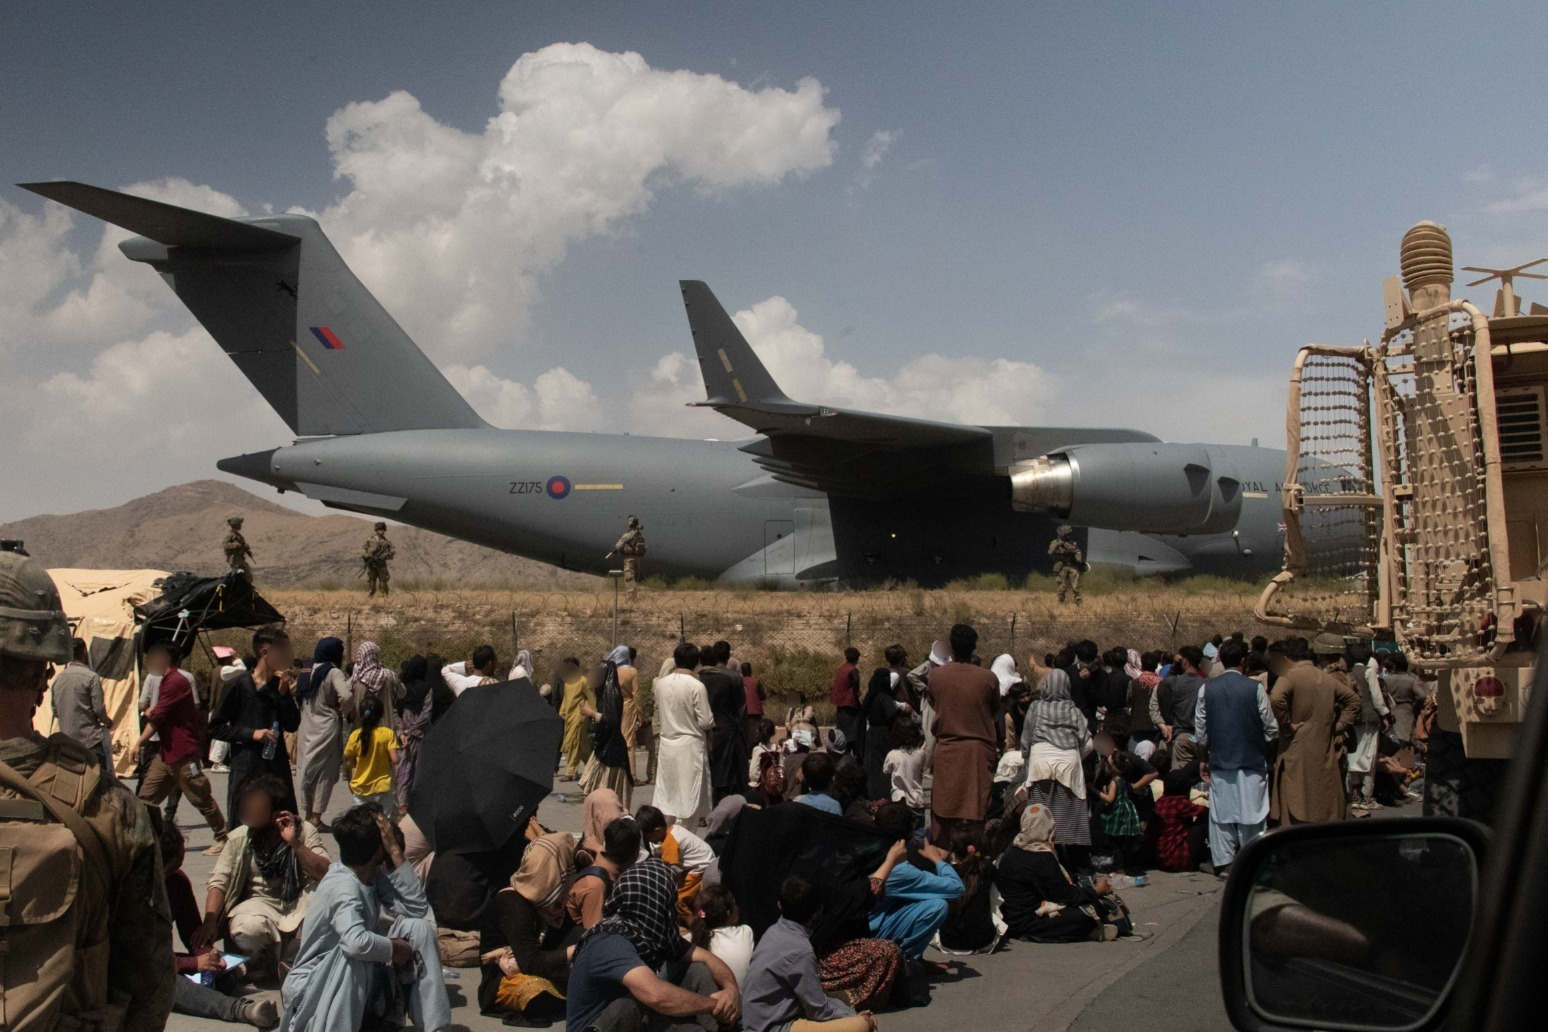 UK nationals told to stay away from Kabul airport over terrorism threat